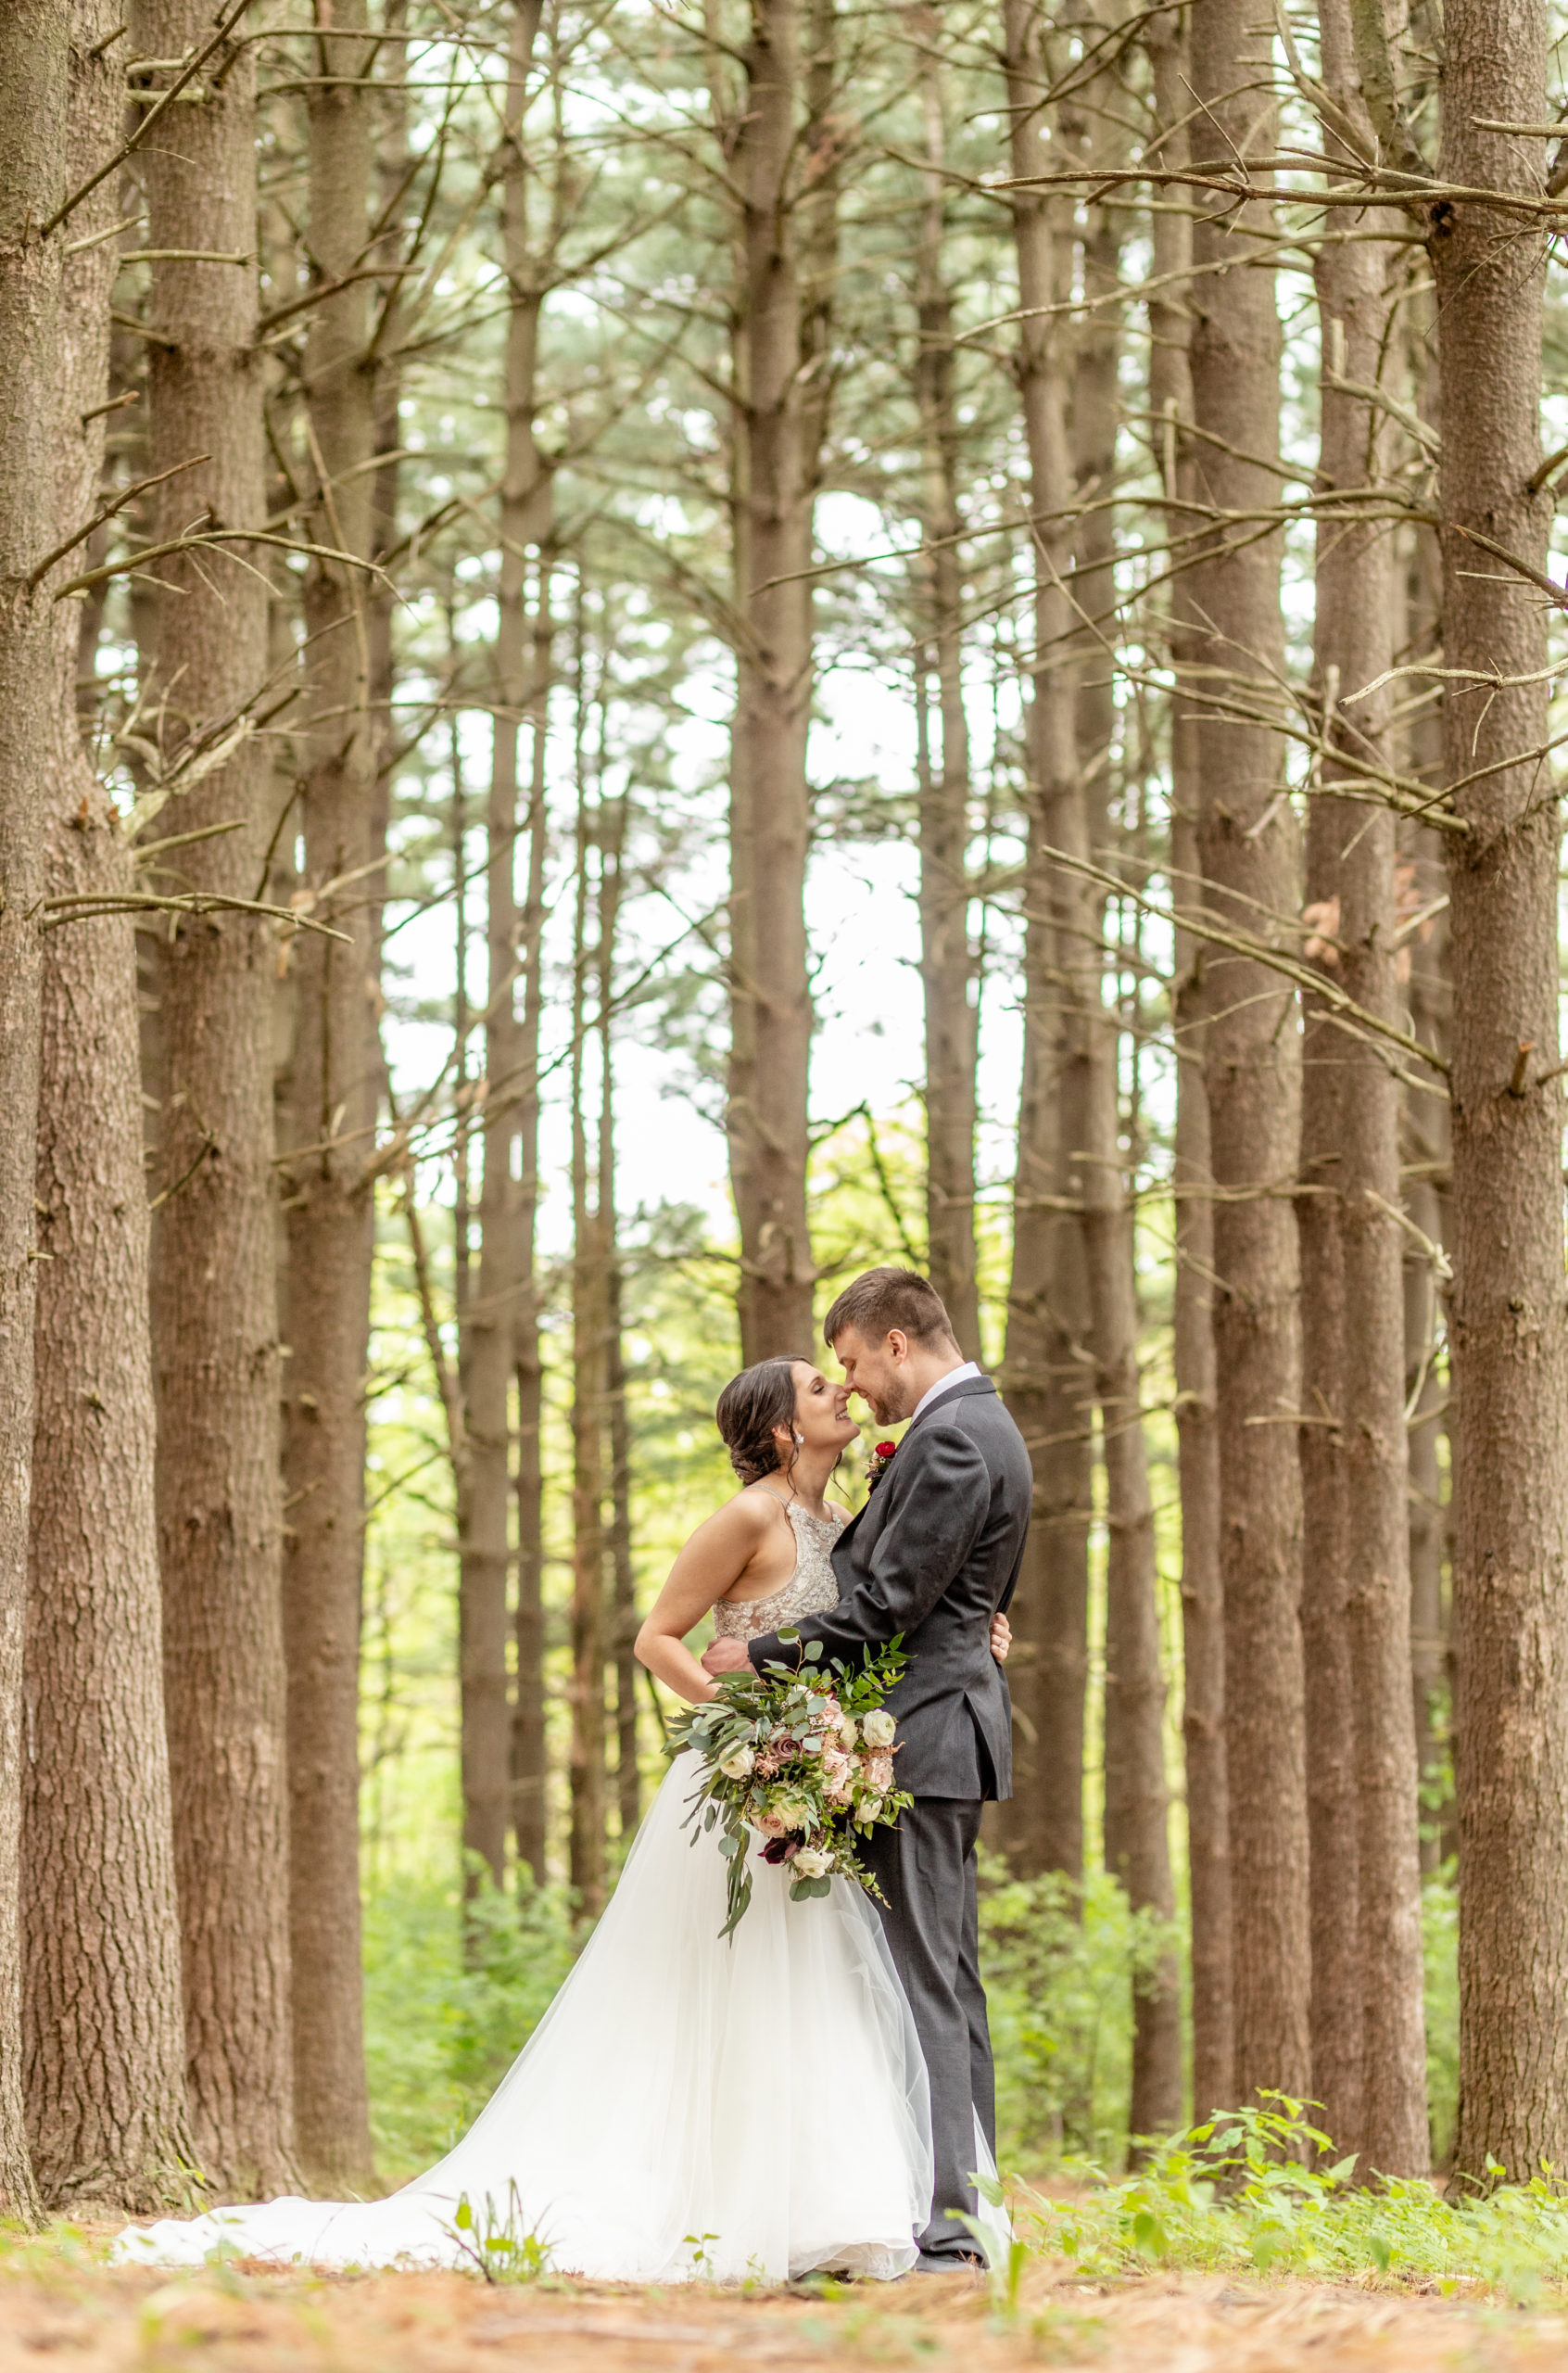 laughing under the trees, bride and groom, wedding day, pine trees, southern illinois photography